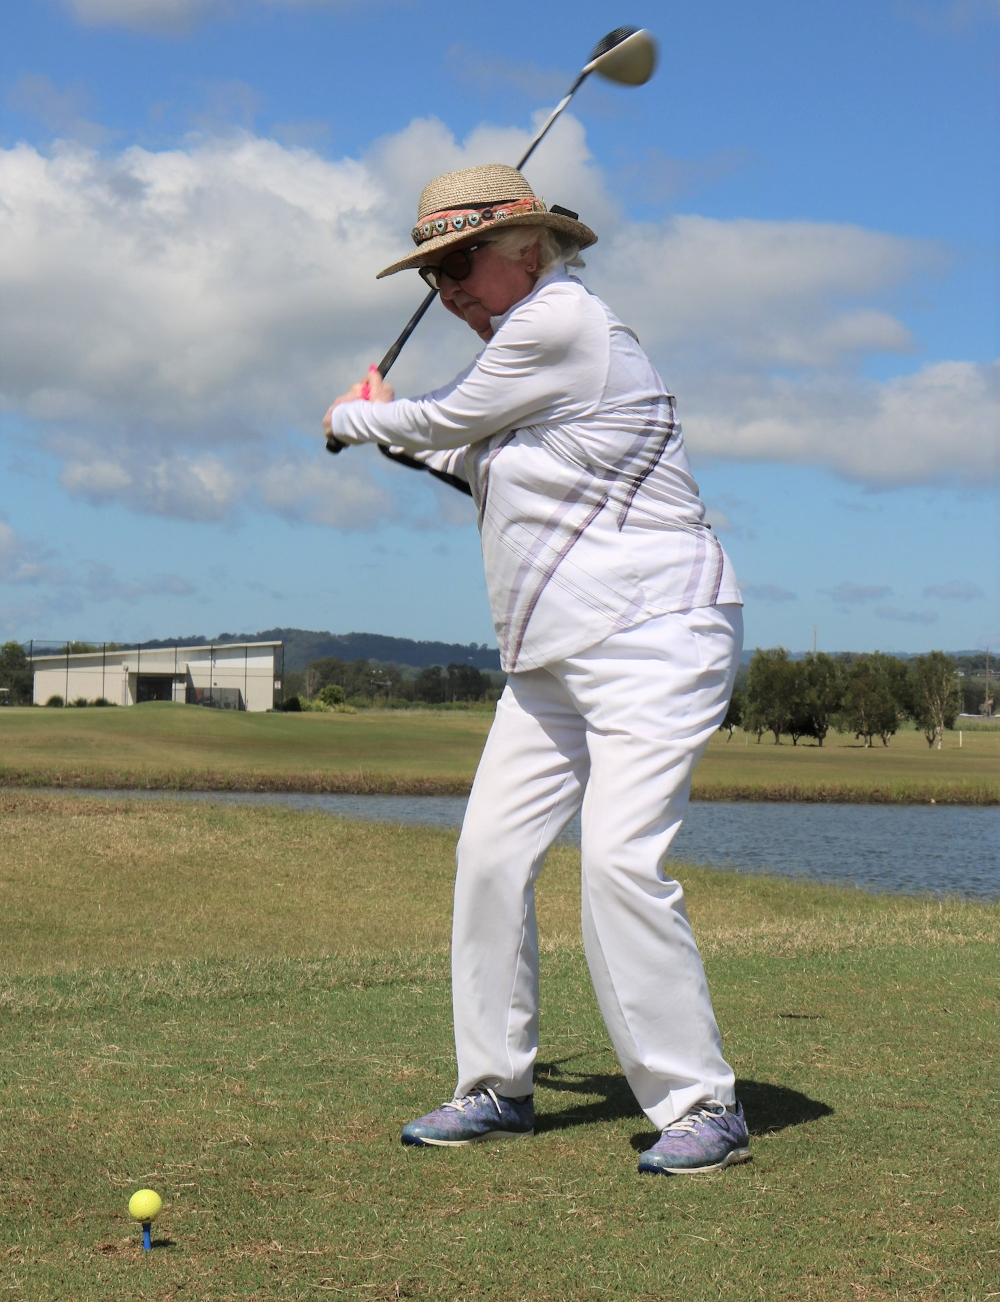 Mary Hadden teeing it up on her 100th